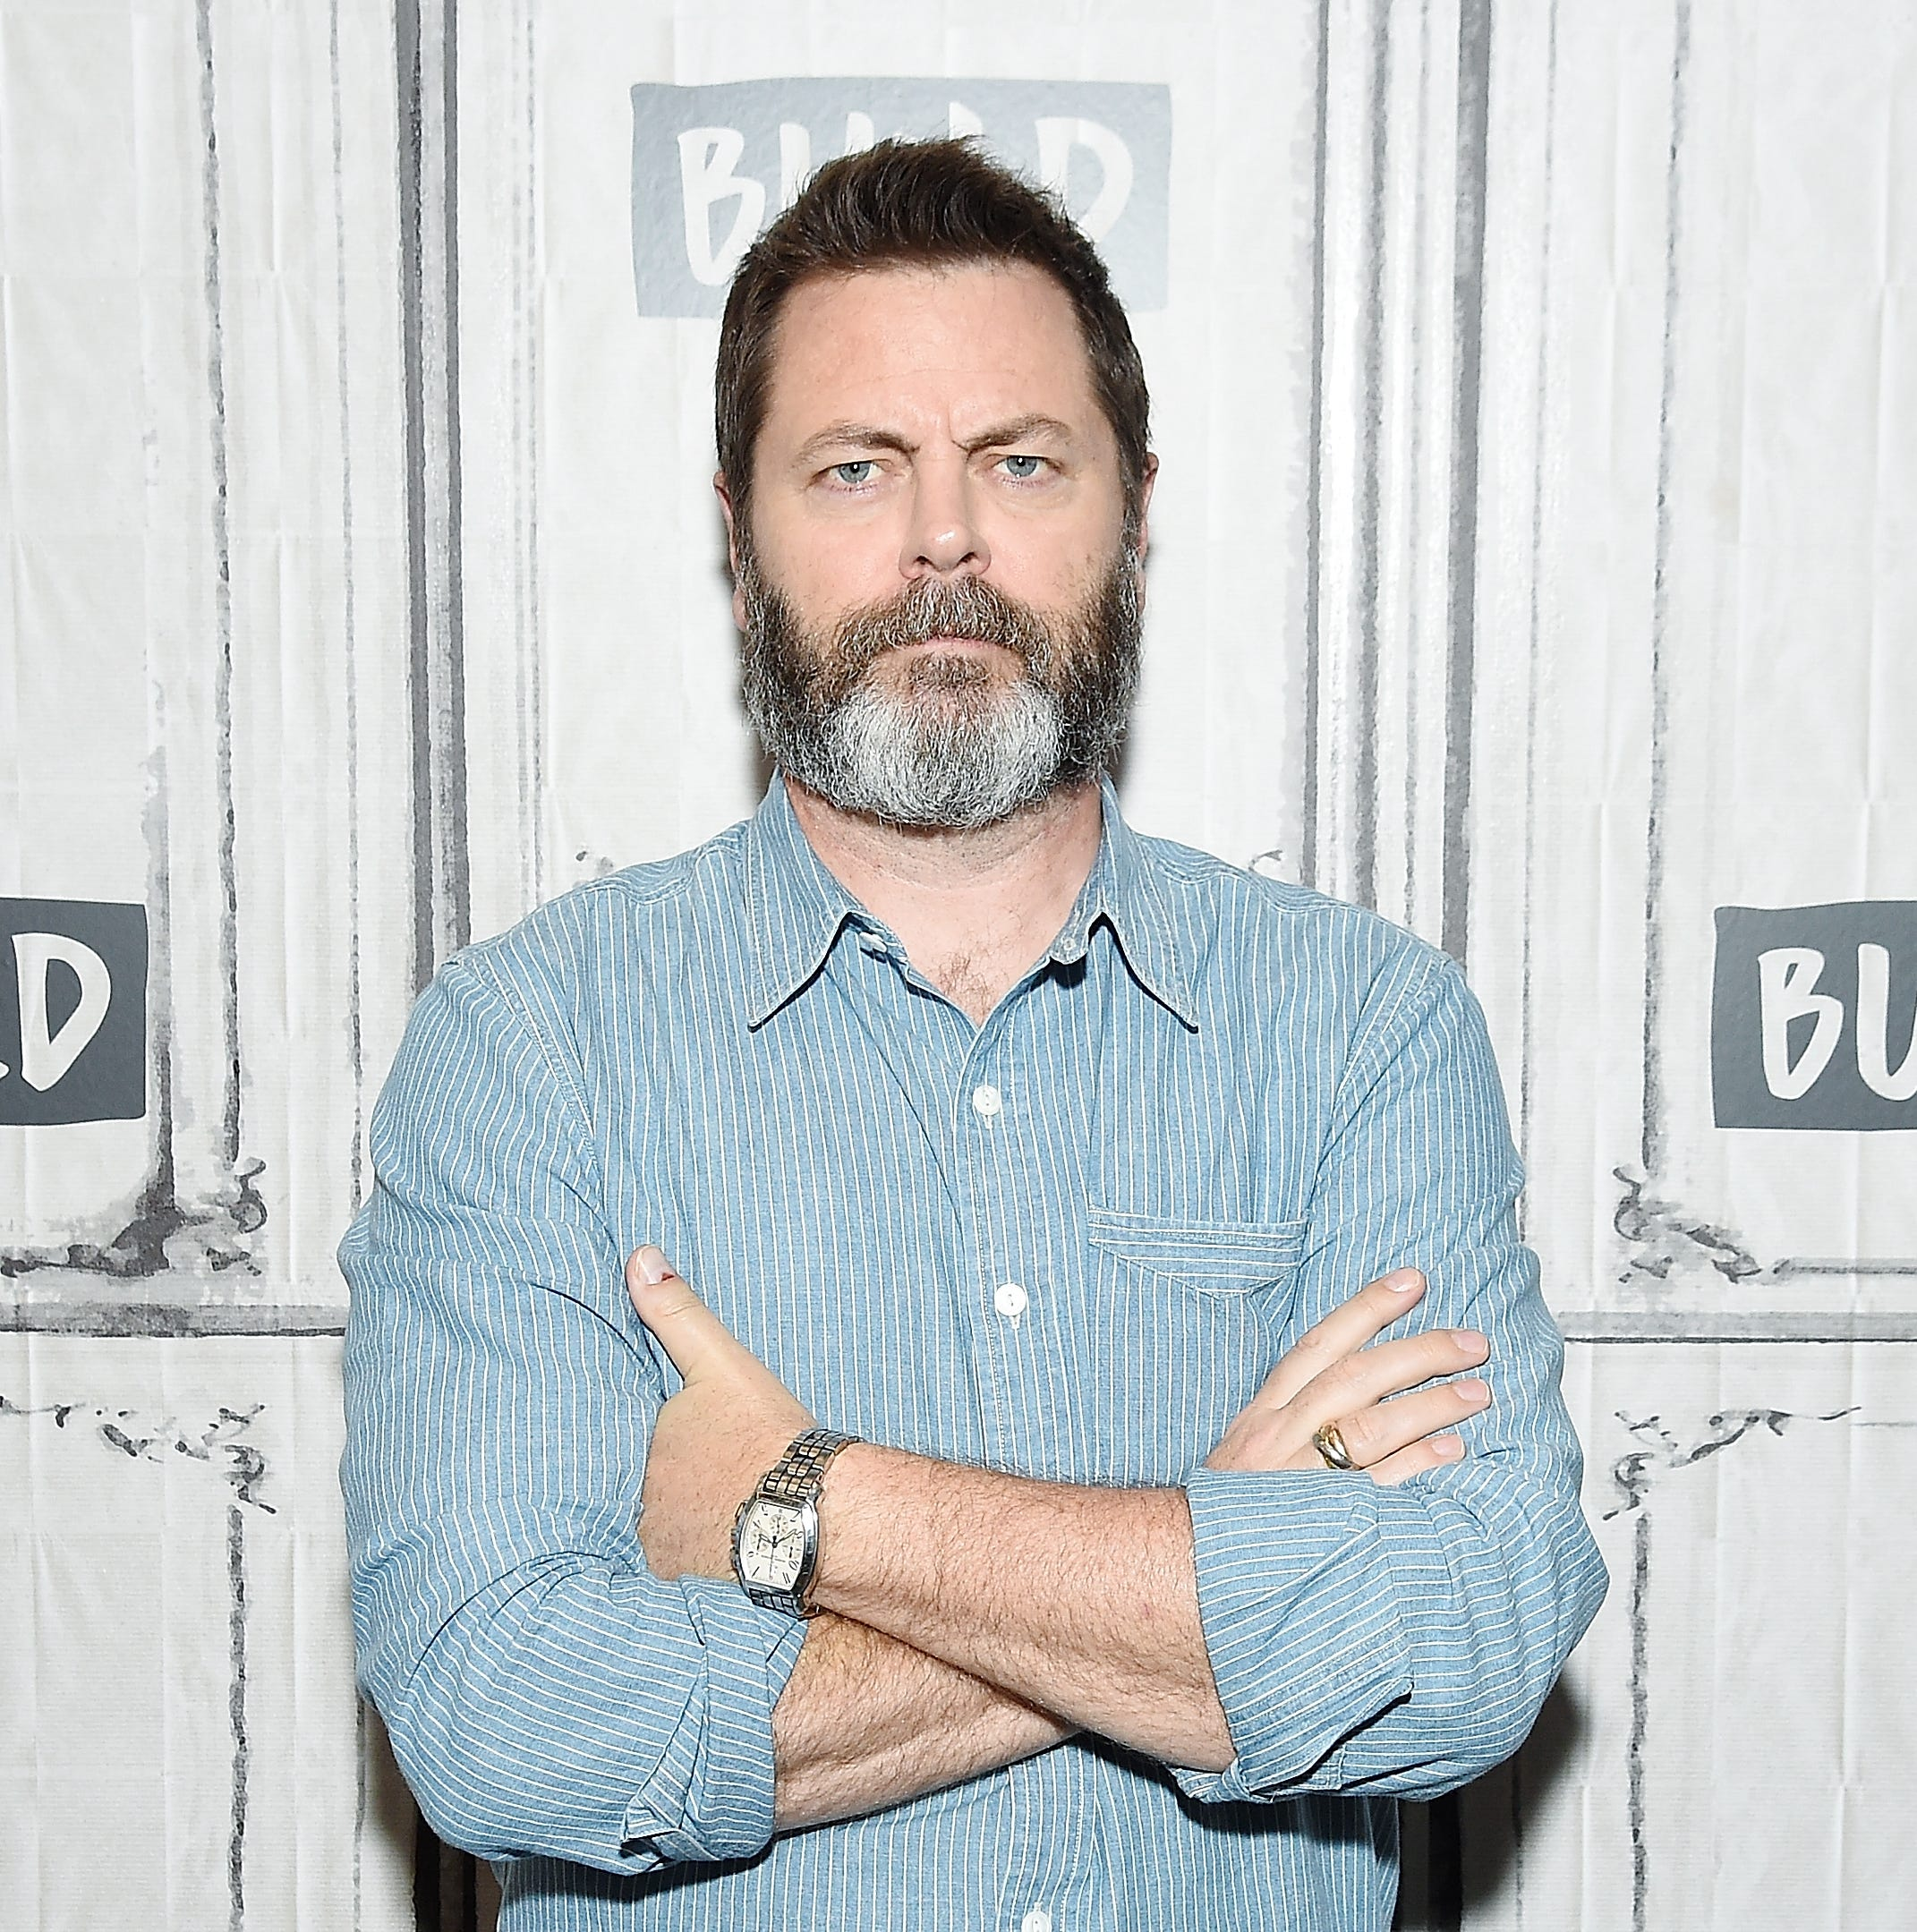 'Parks and Rec' star Nick Offerman — aka Ron Swanson — is coming to Knoxville